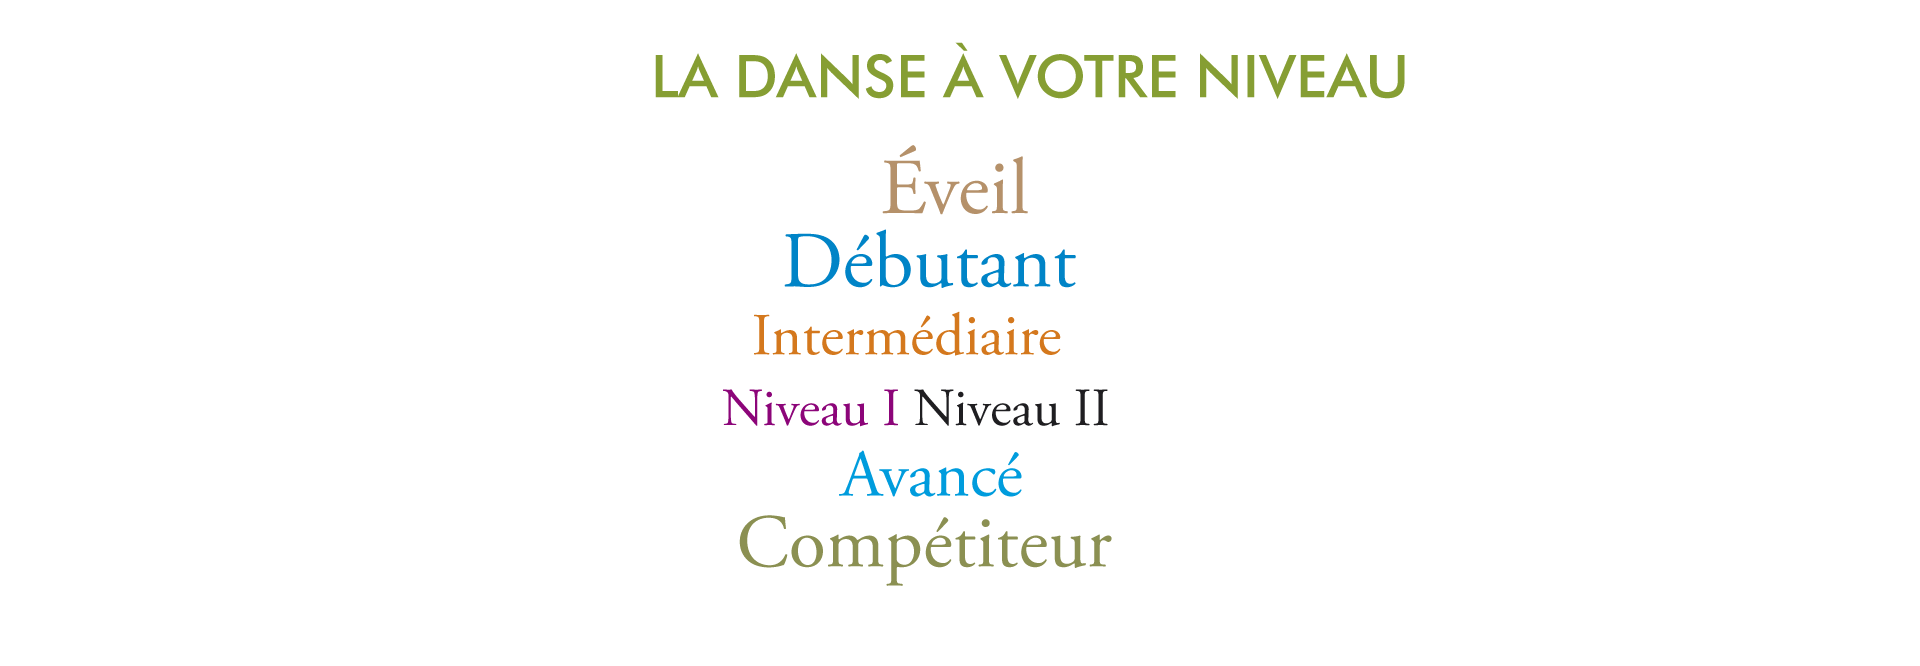 Cours danse Esonne 91 As en danse